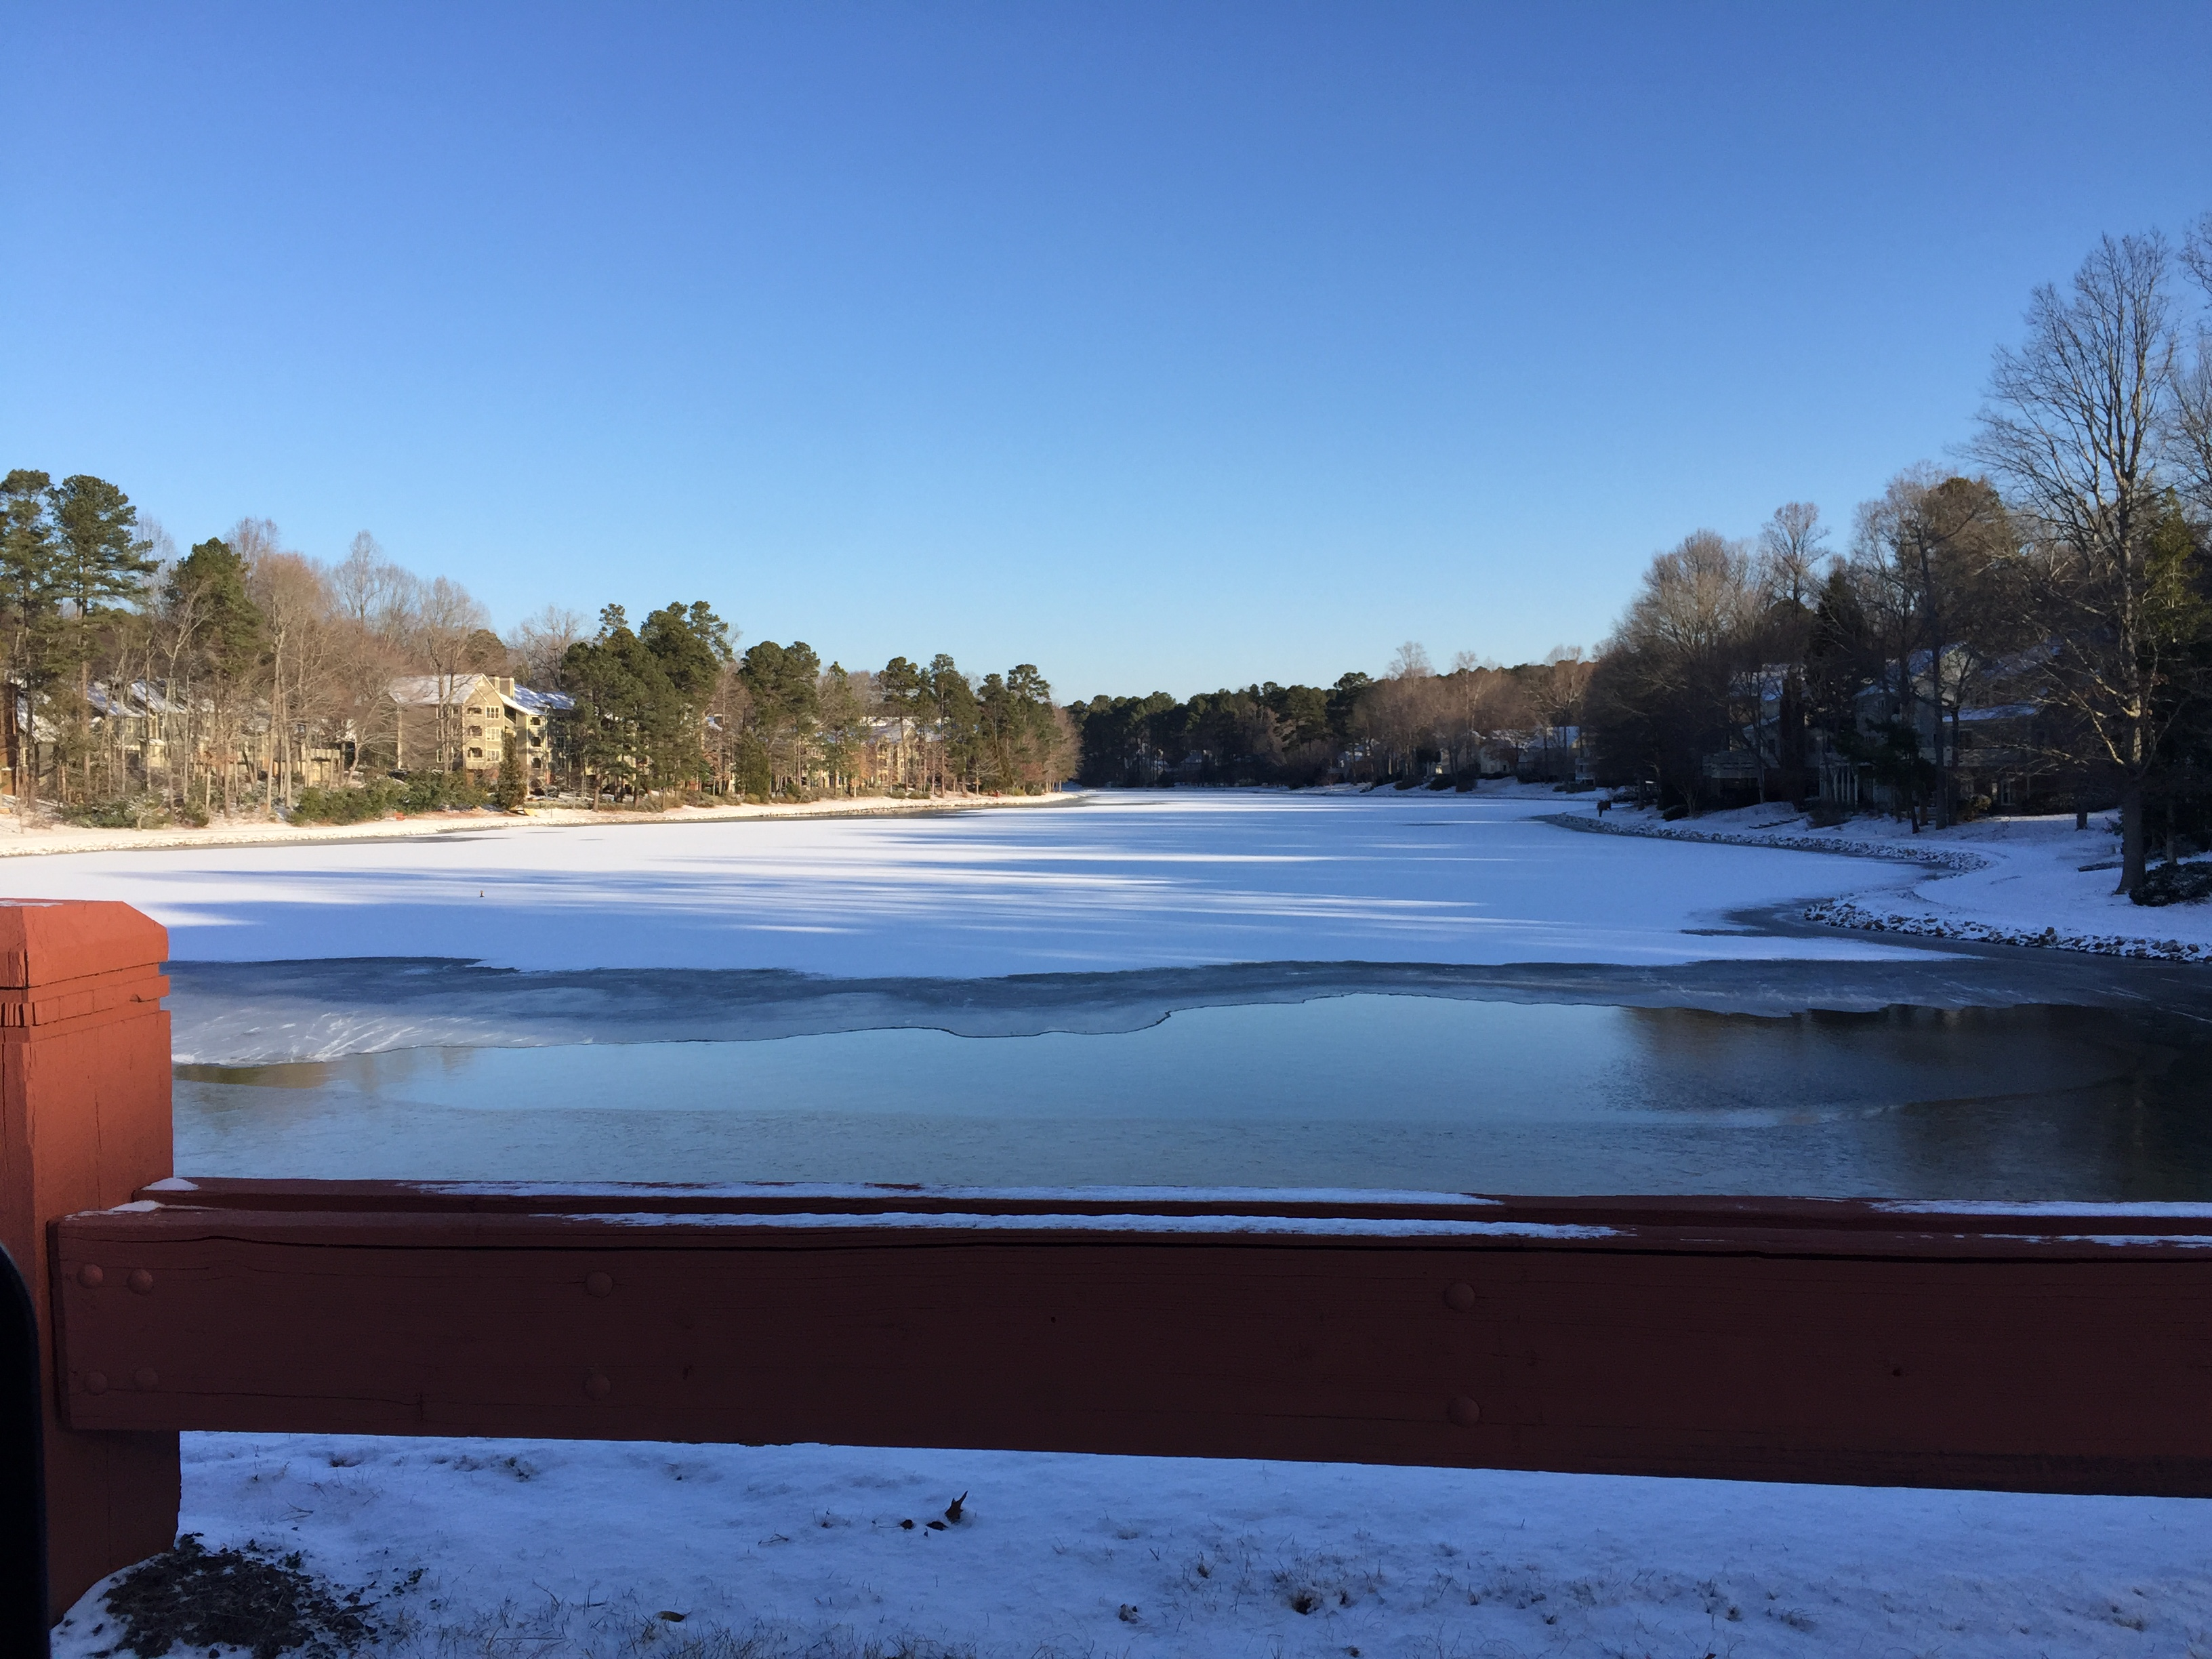 Be Safe -- Do Not Venture On Frozen Lakes & Ponds